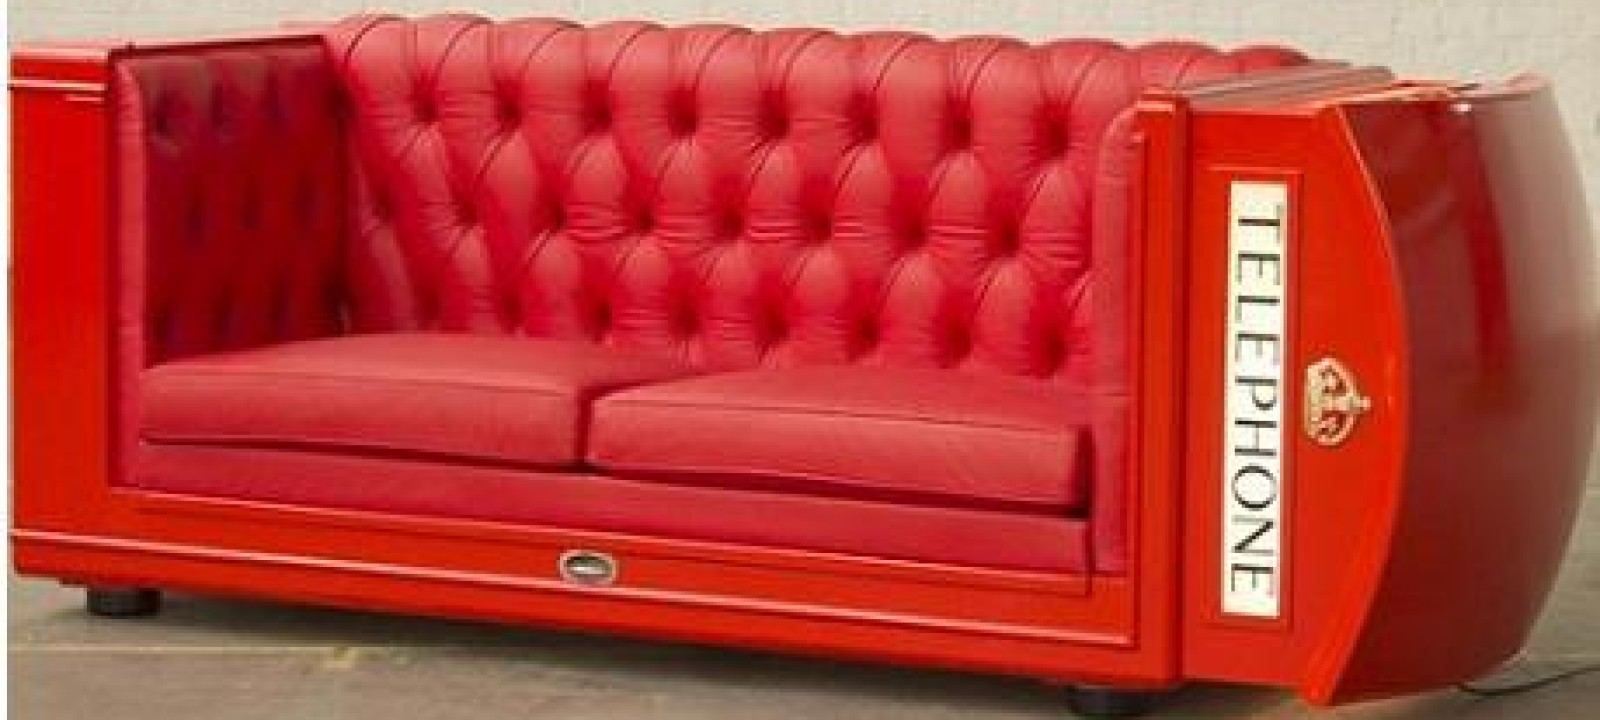 Phone Booth Couch